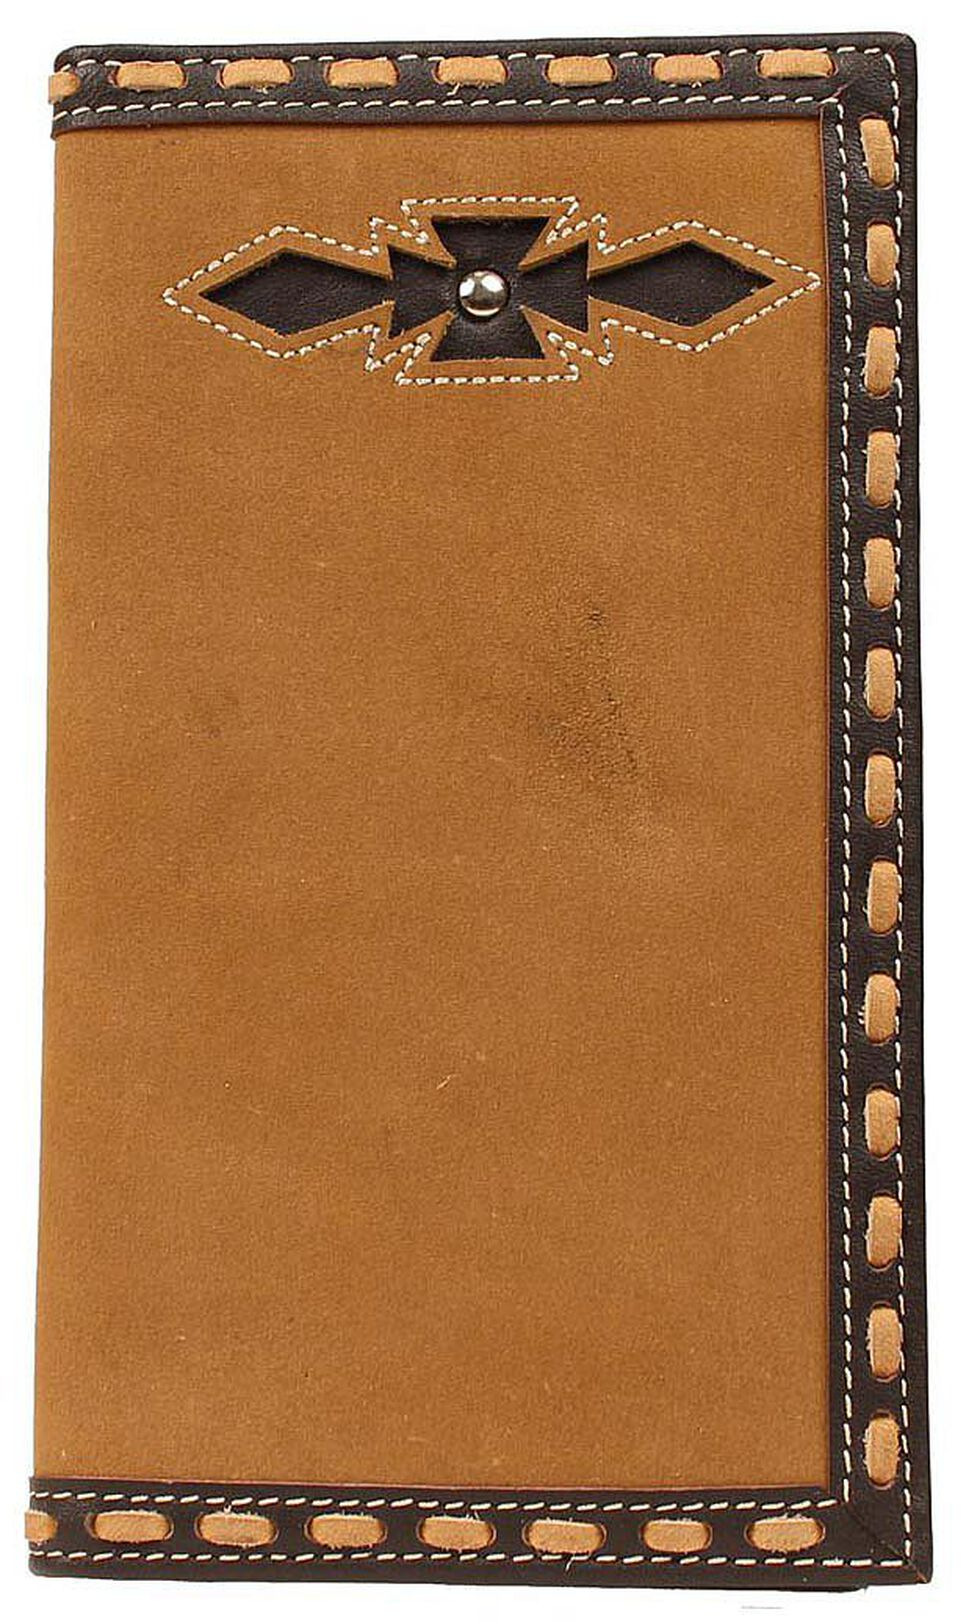 Ariat Laced Edge & Aztec Inlay Rodeo Wallet, Brown, hi-res